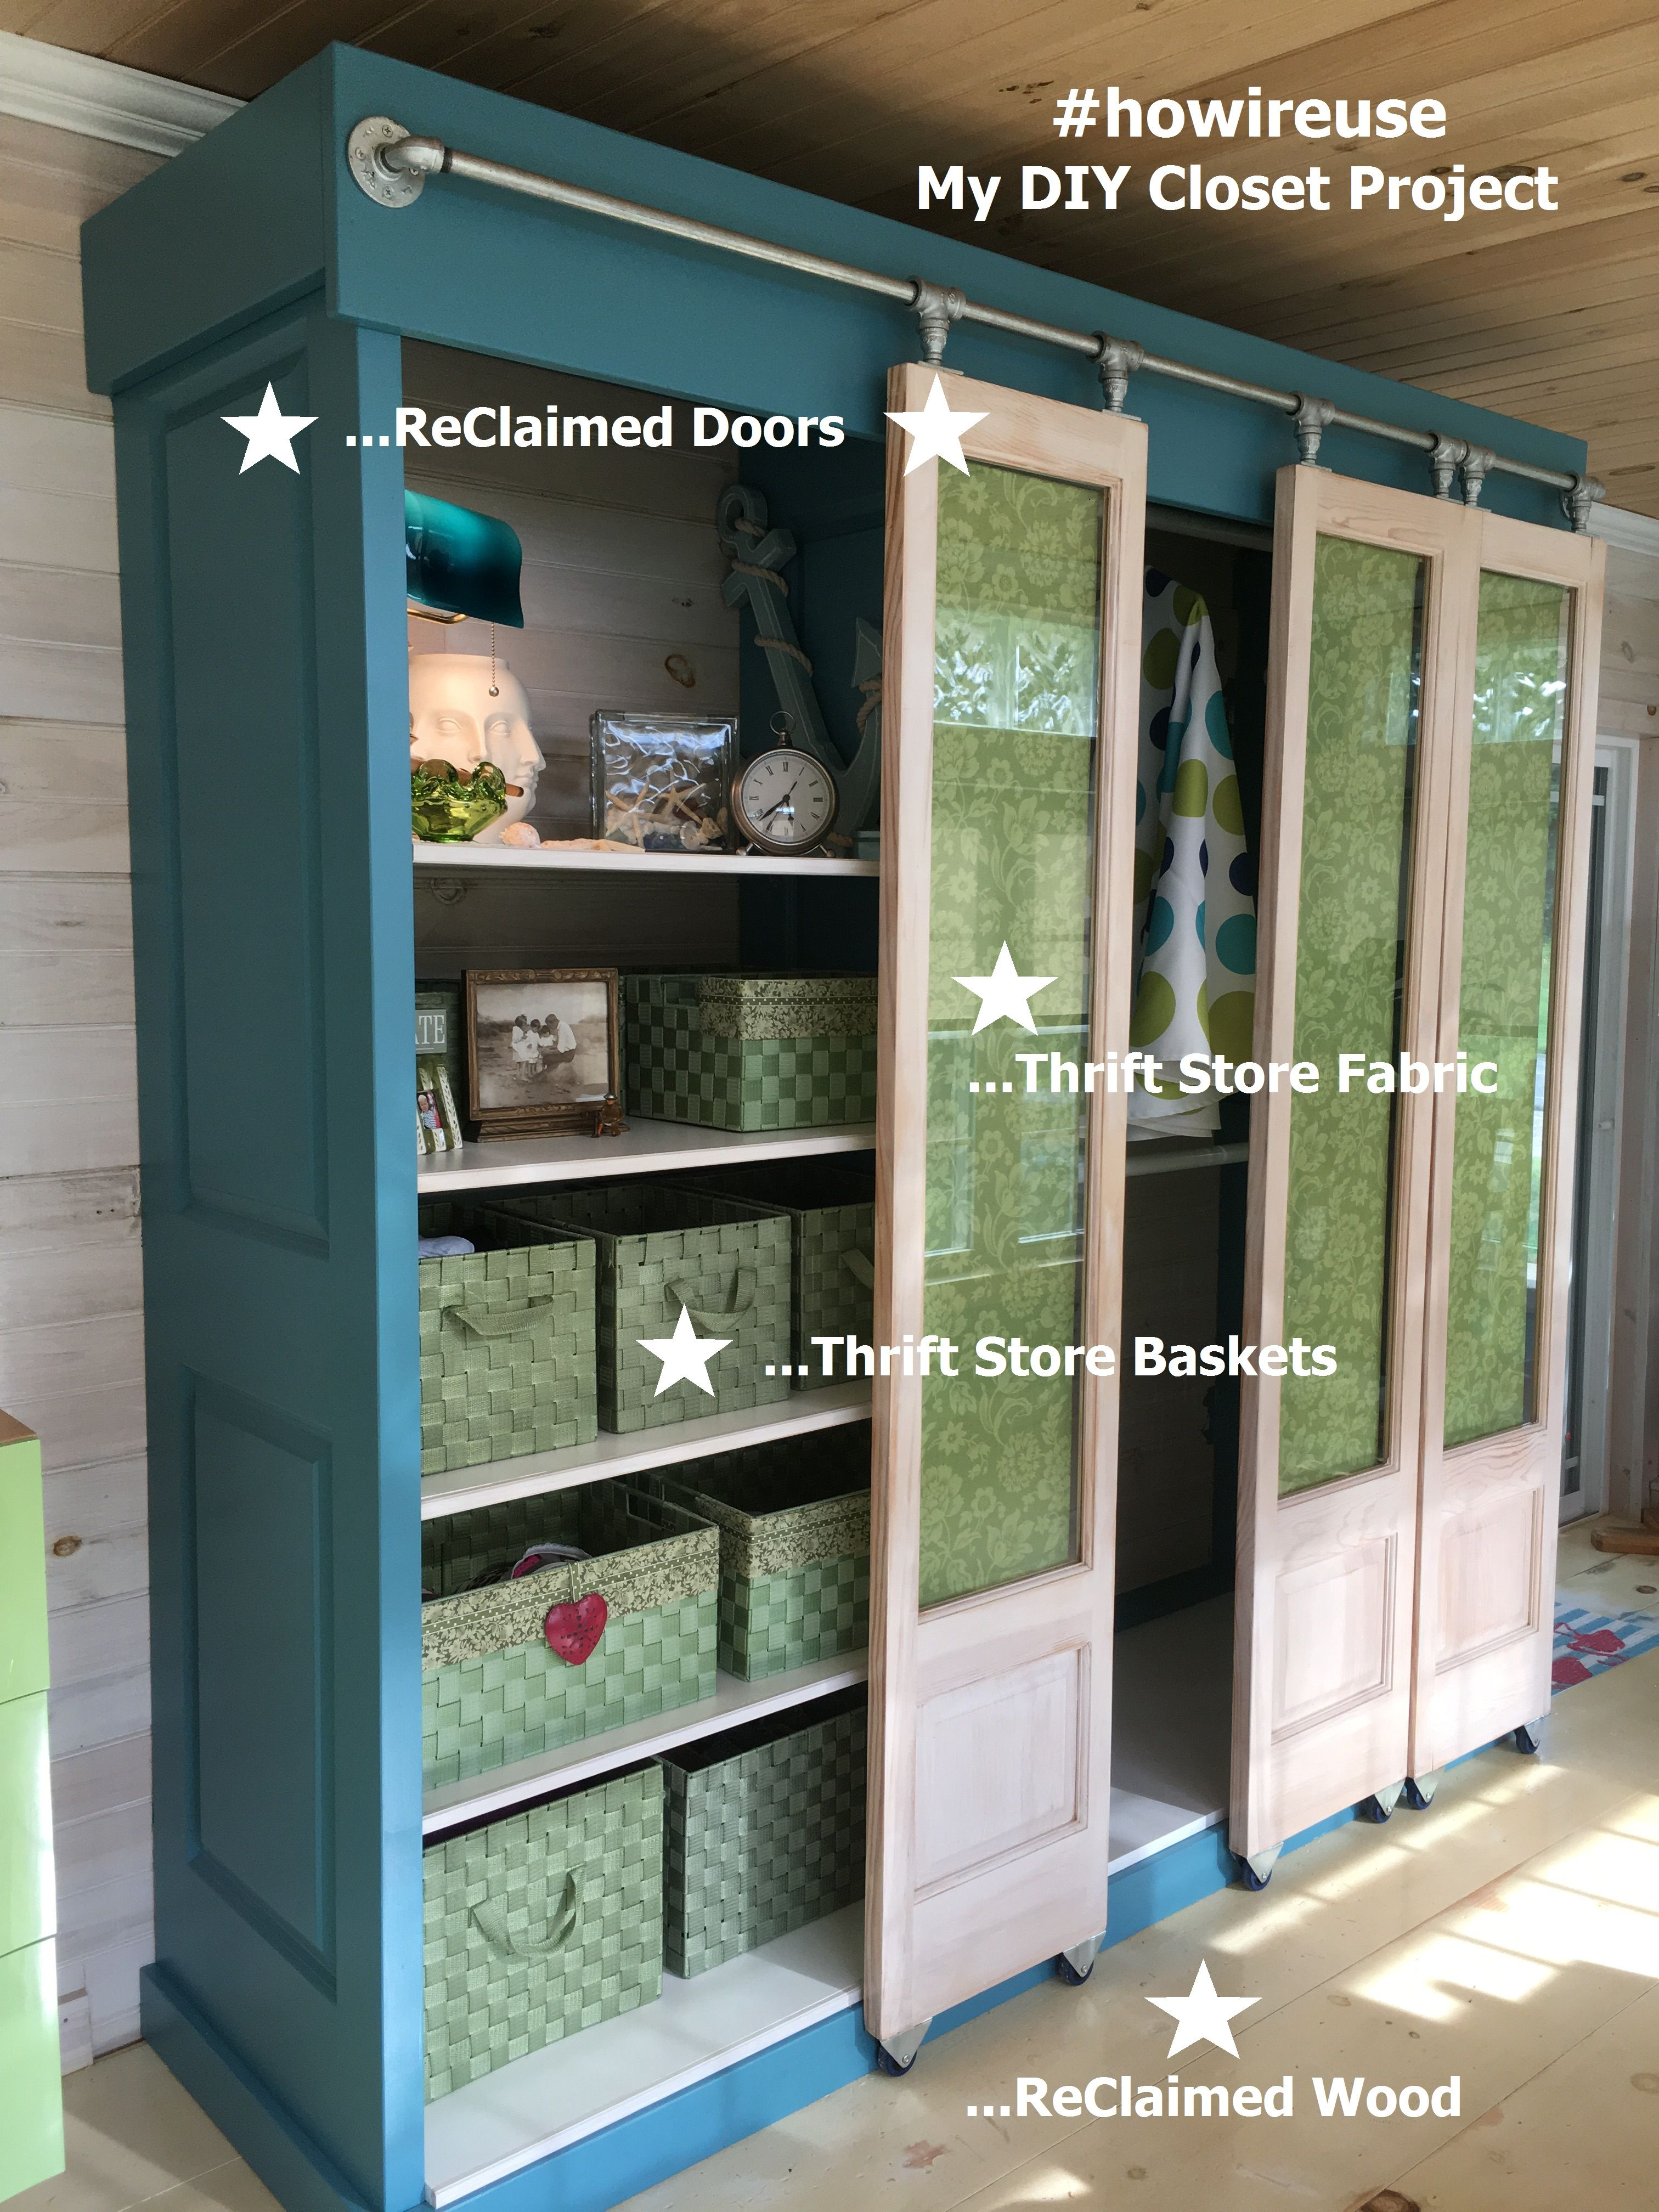 Recycled Doors Thrift Store Baskets u0026 Fabric. Plumbing Pipe used & My Custom Closet! Recycled Doors Thrift Store Baskets u0026 Fabric ...